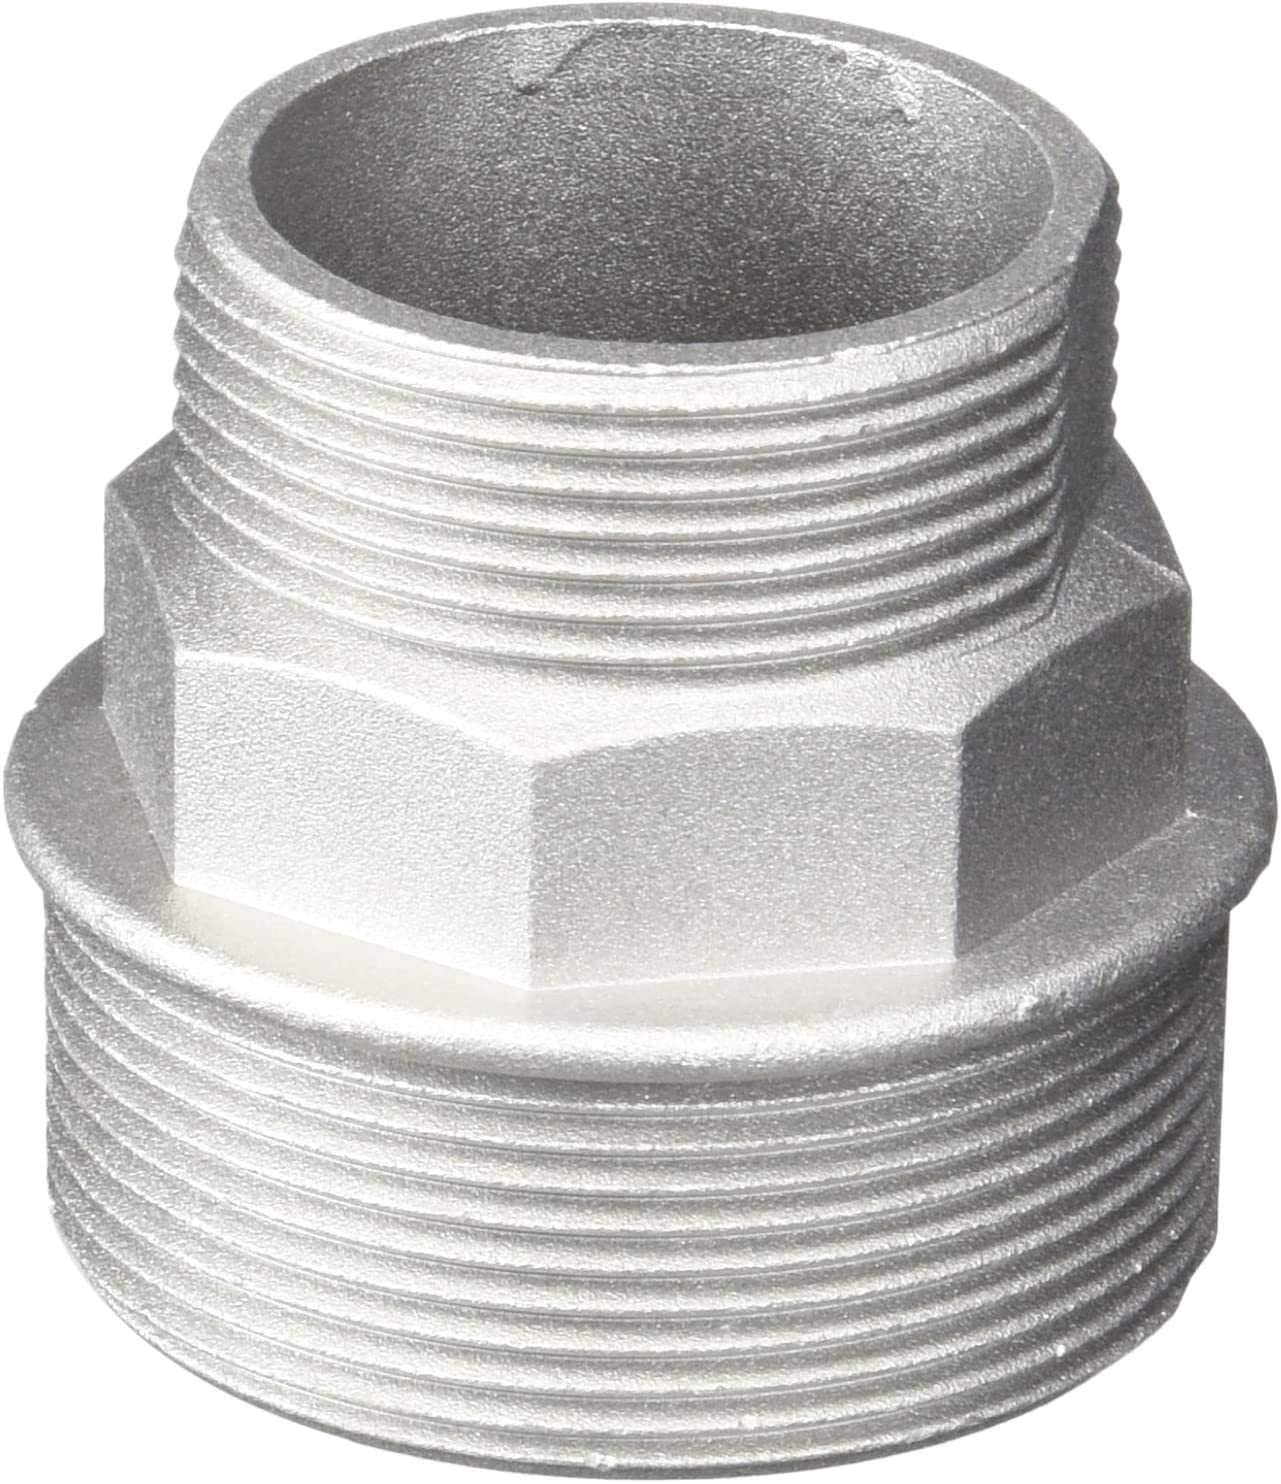 GPI Electric Fuel Pump Bung Adapter Kit: 2 in. NPT Bung Adapter (GPI Genuine Part 110909-1)